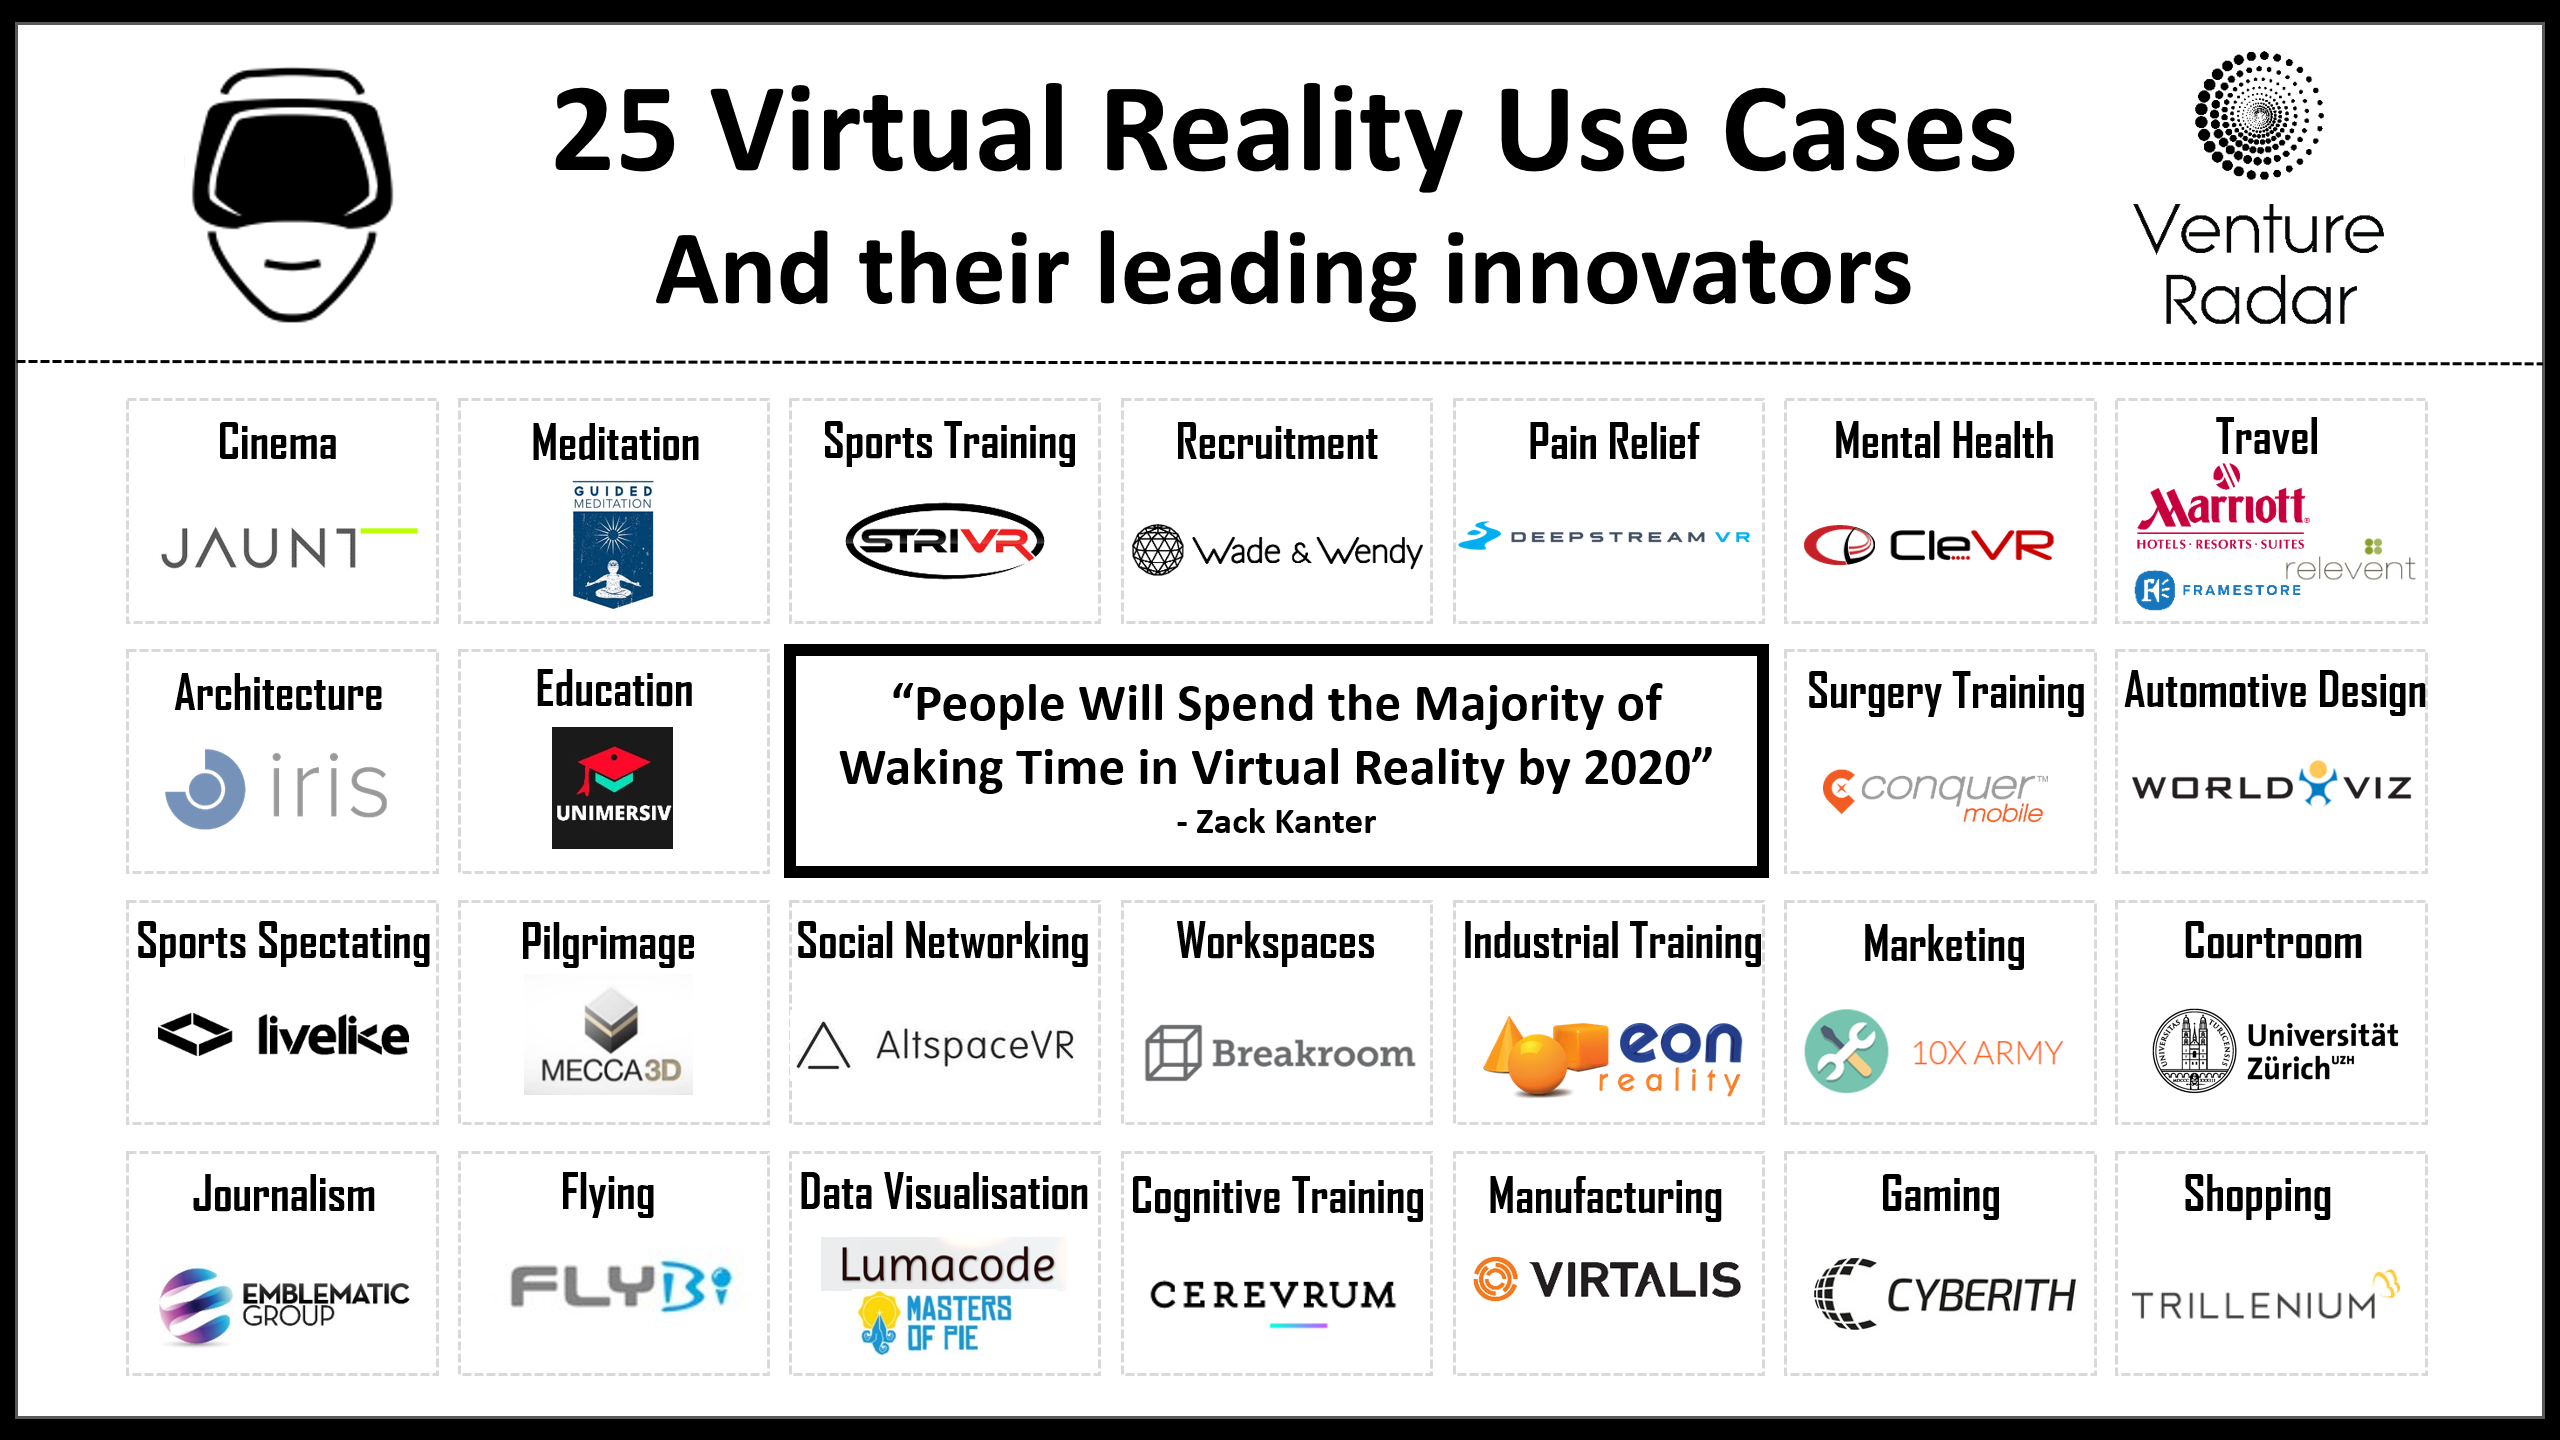 Virtual reality use cases and leading innovators